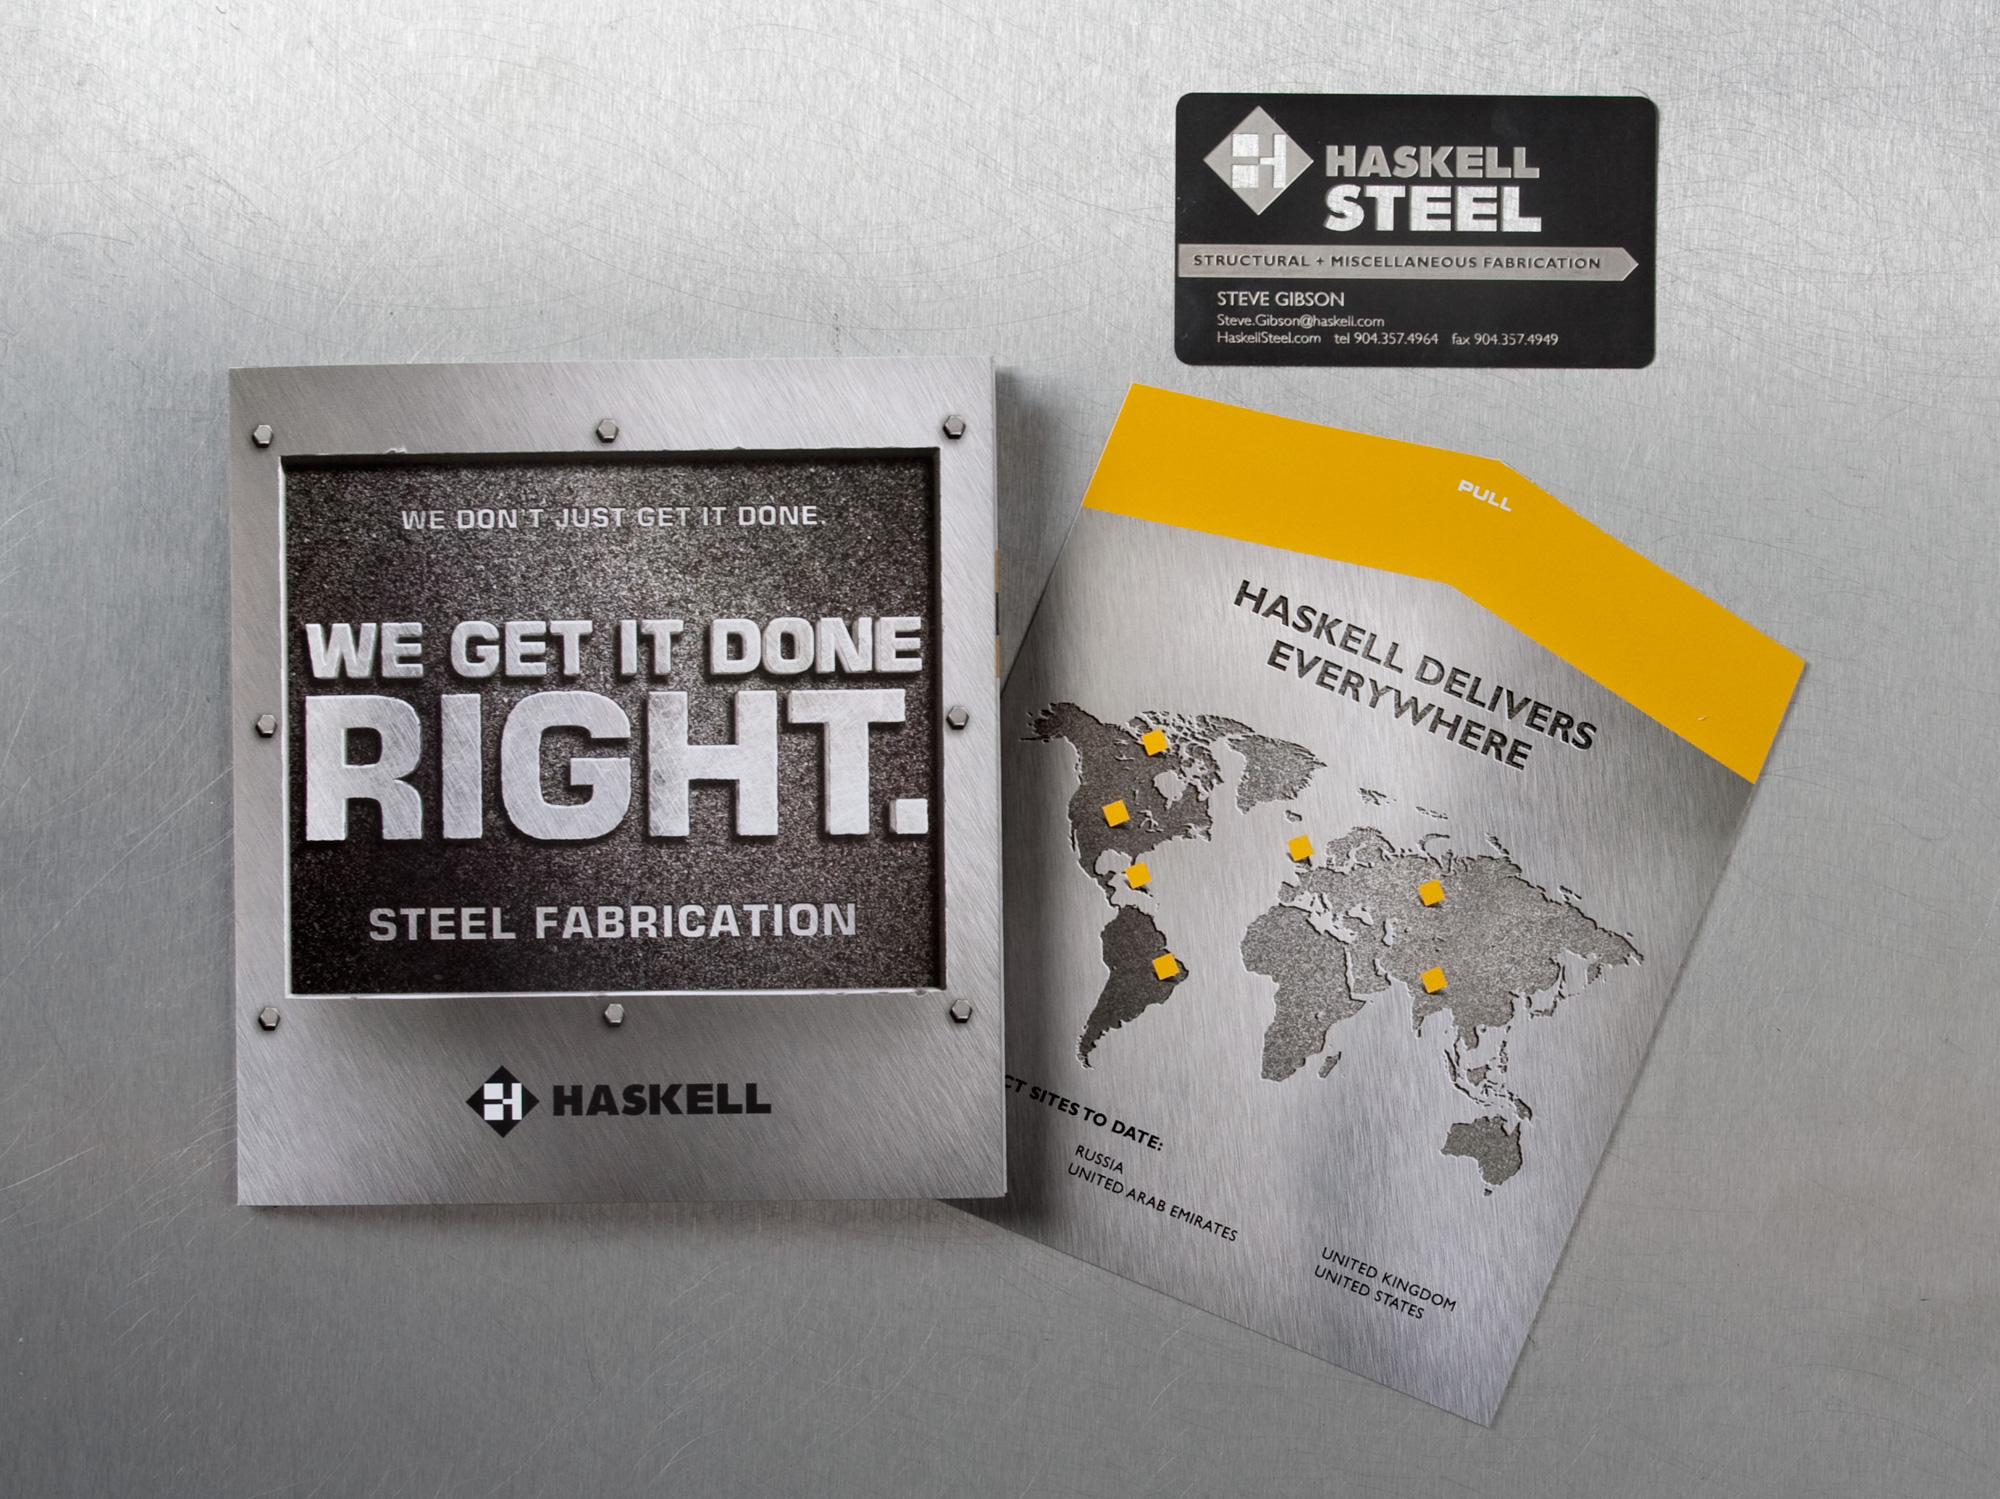 Haskell Steel brochure closed and business card